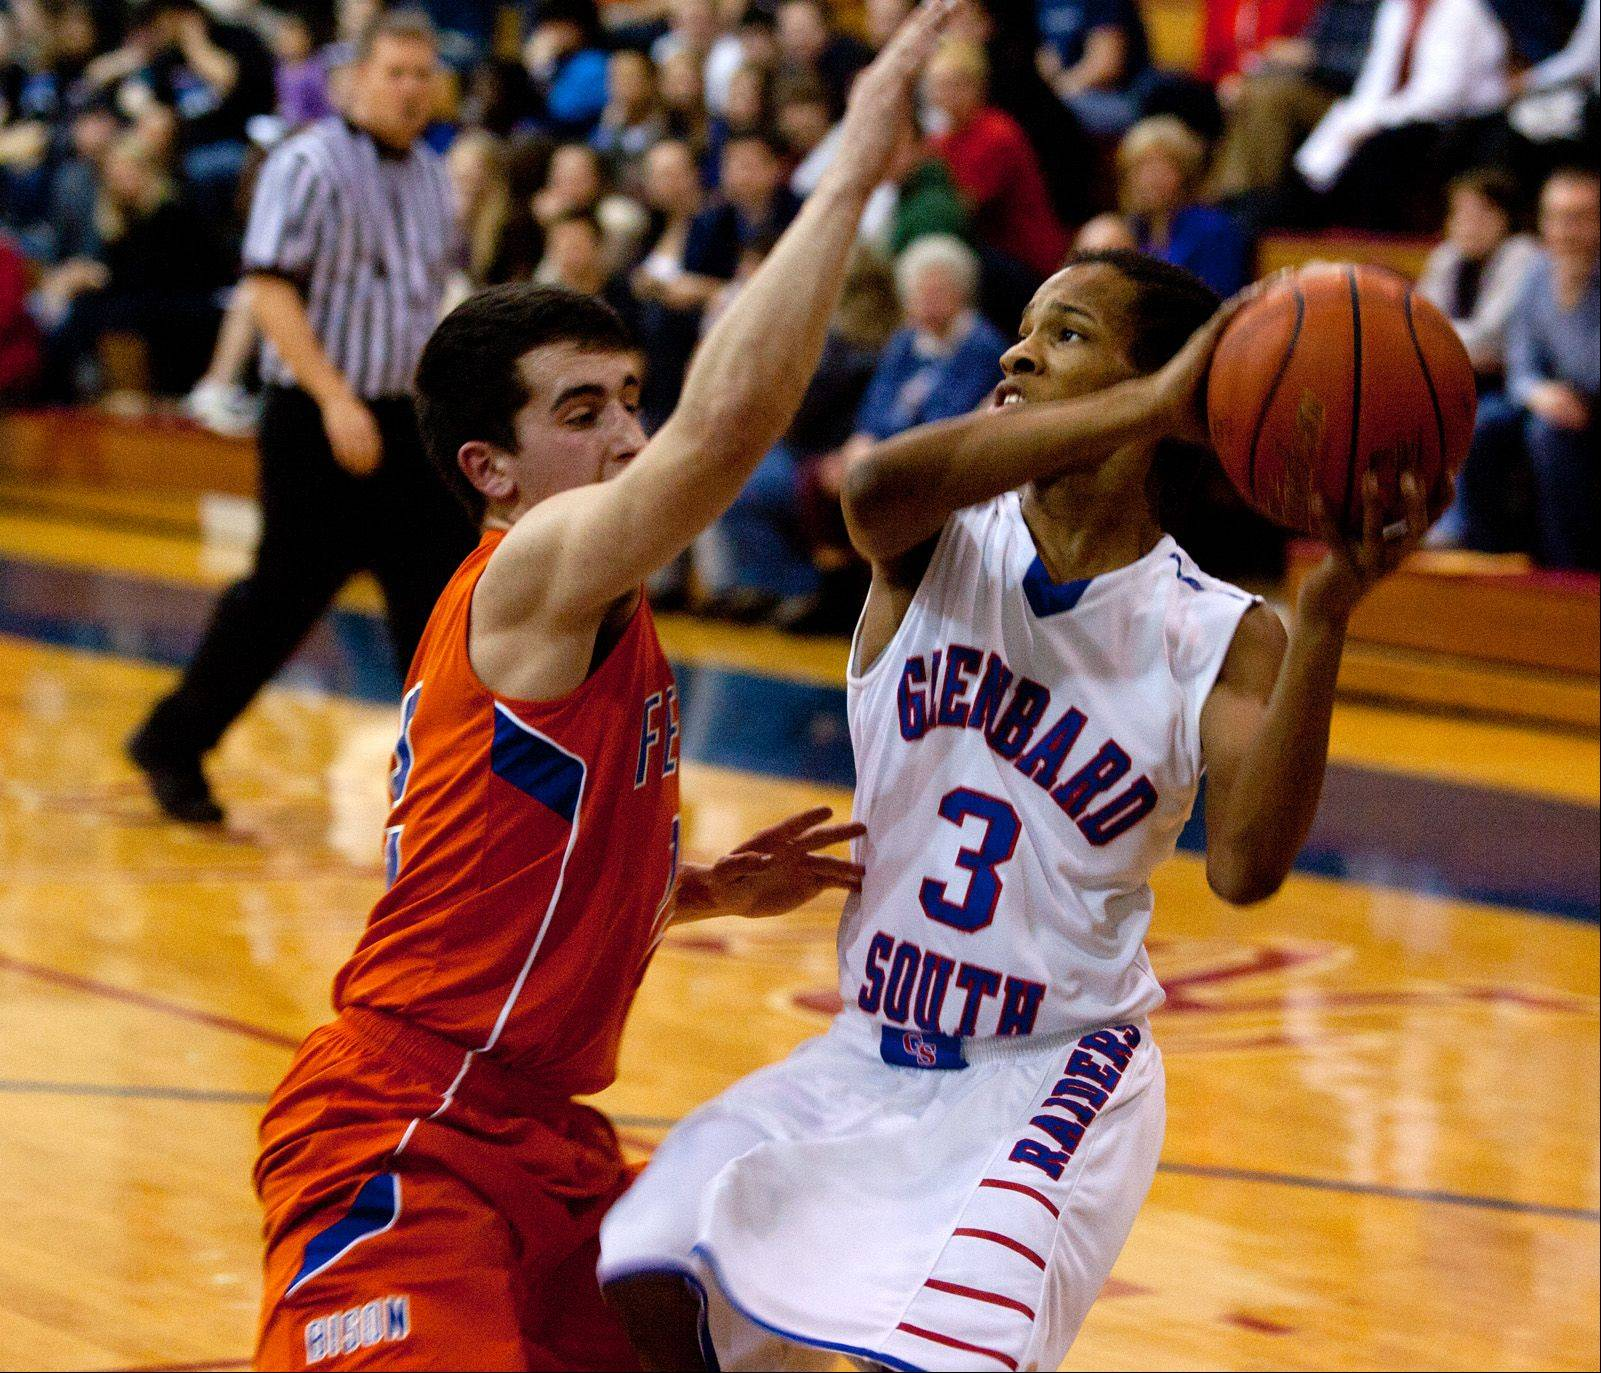 Images: Fenton vs. Glenbard South, boys basketball